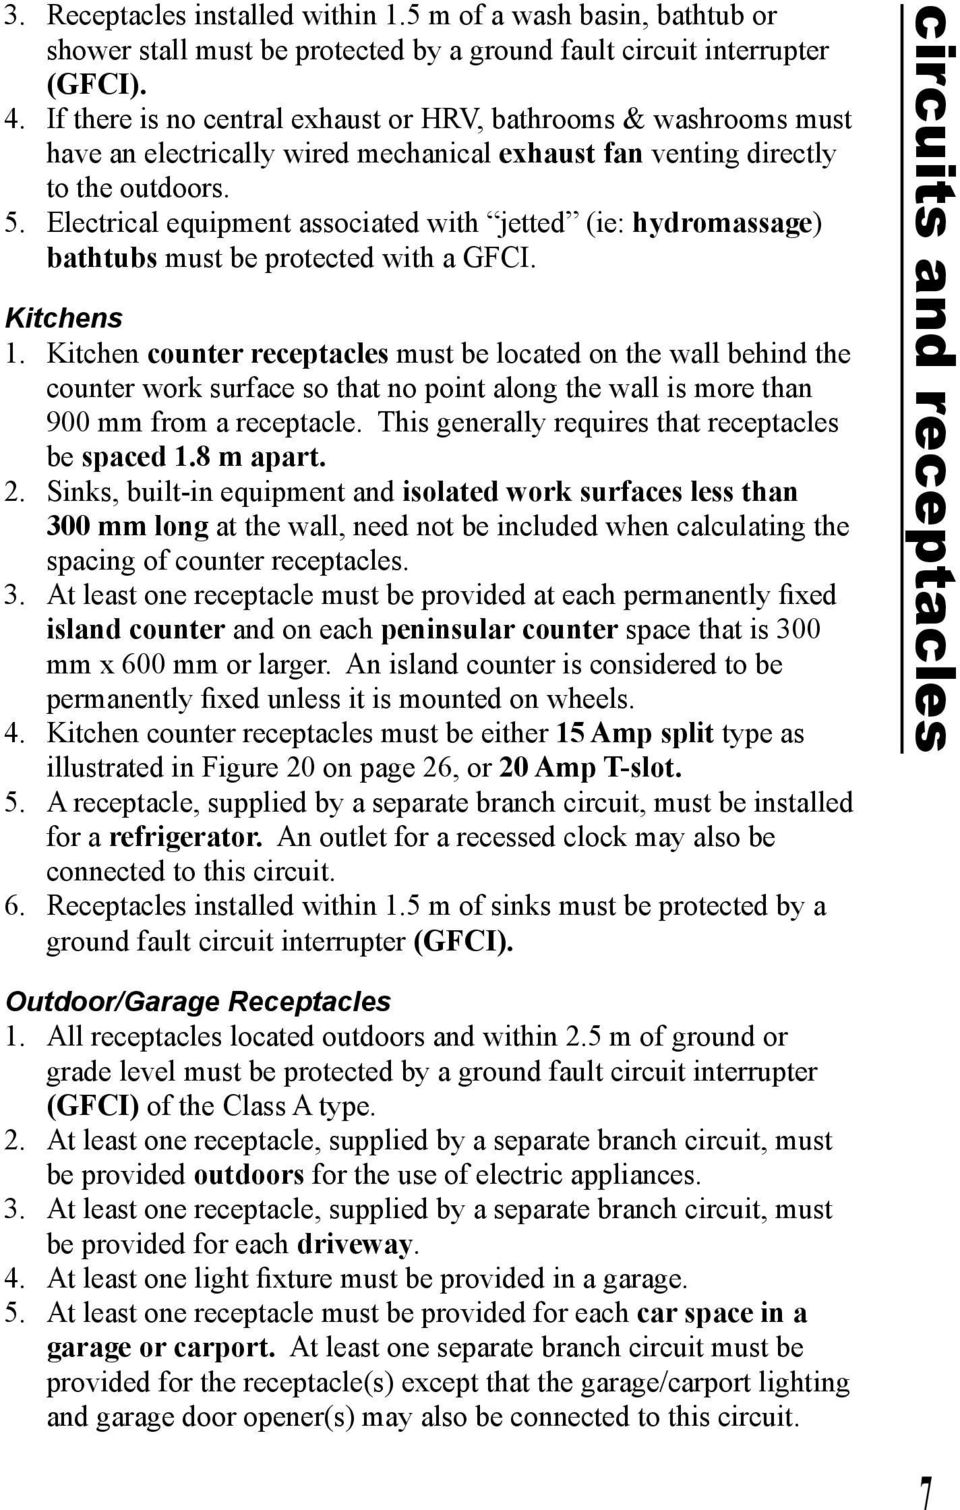 Electrical Installations A Homeowner Guide To The Winnipeg Gfci Kitchen Wiring Diagram Free Download Diagrams Pictures Equipment Associated With Jetted Ie Hydromassage Bathtubs Must Be Protected